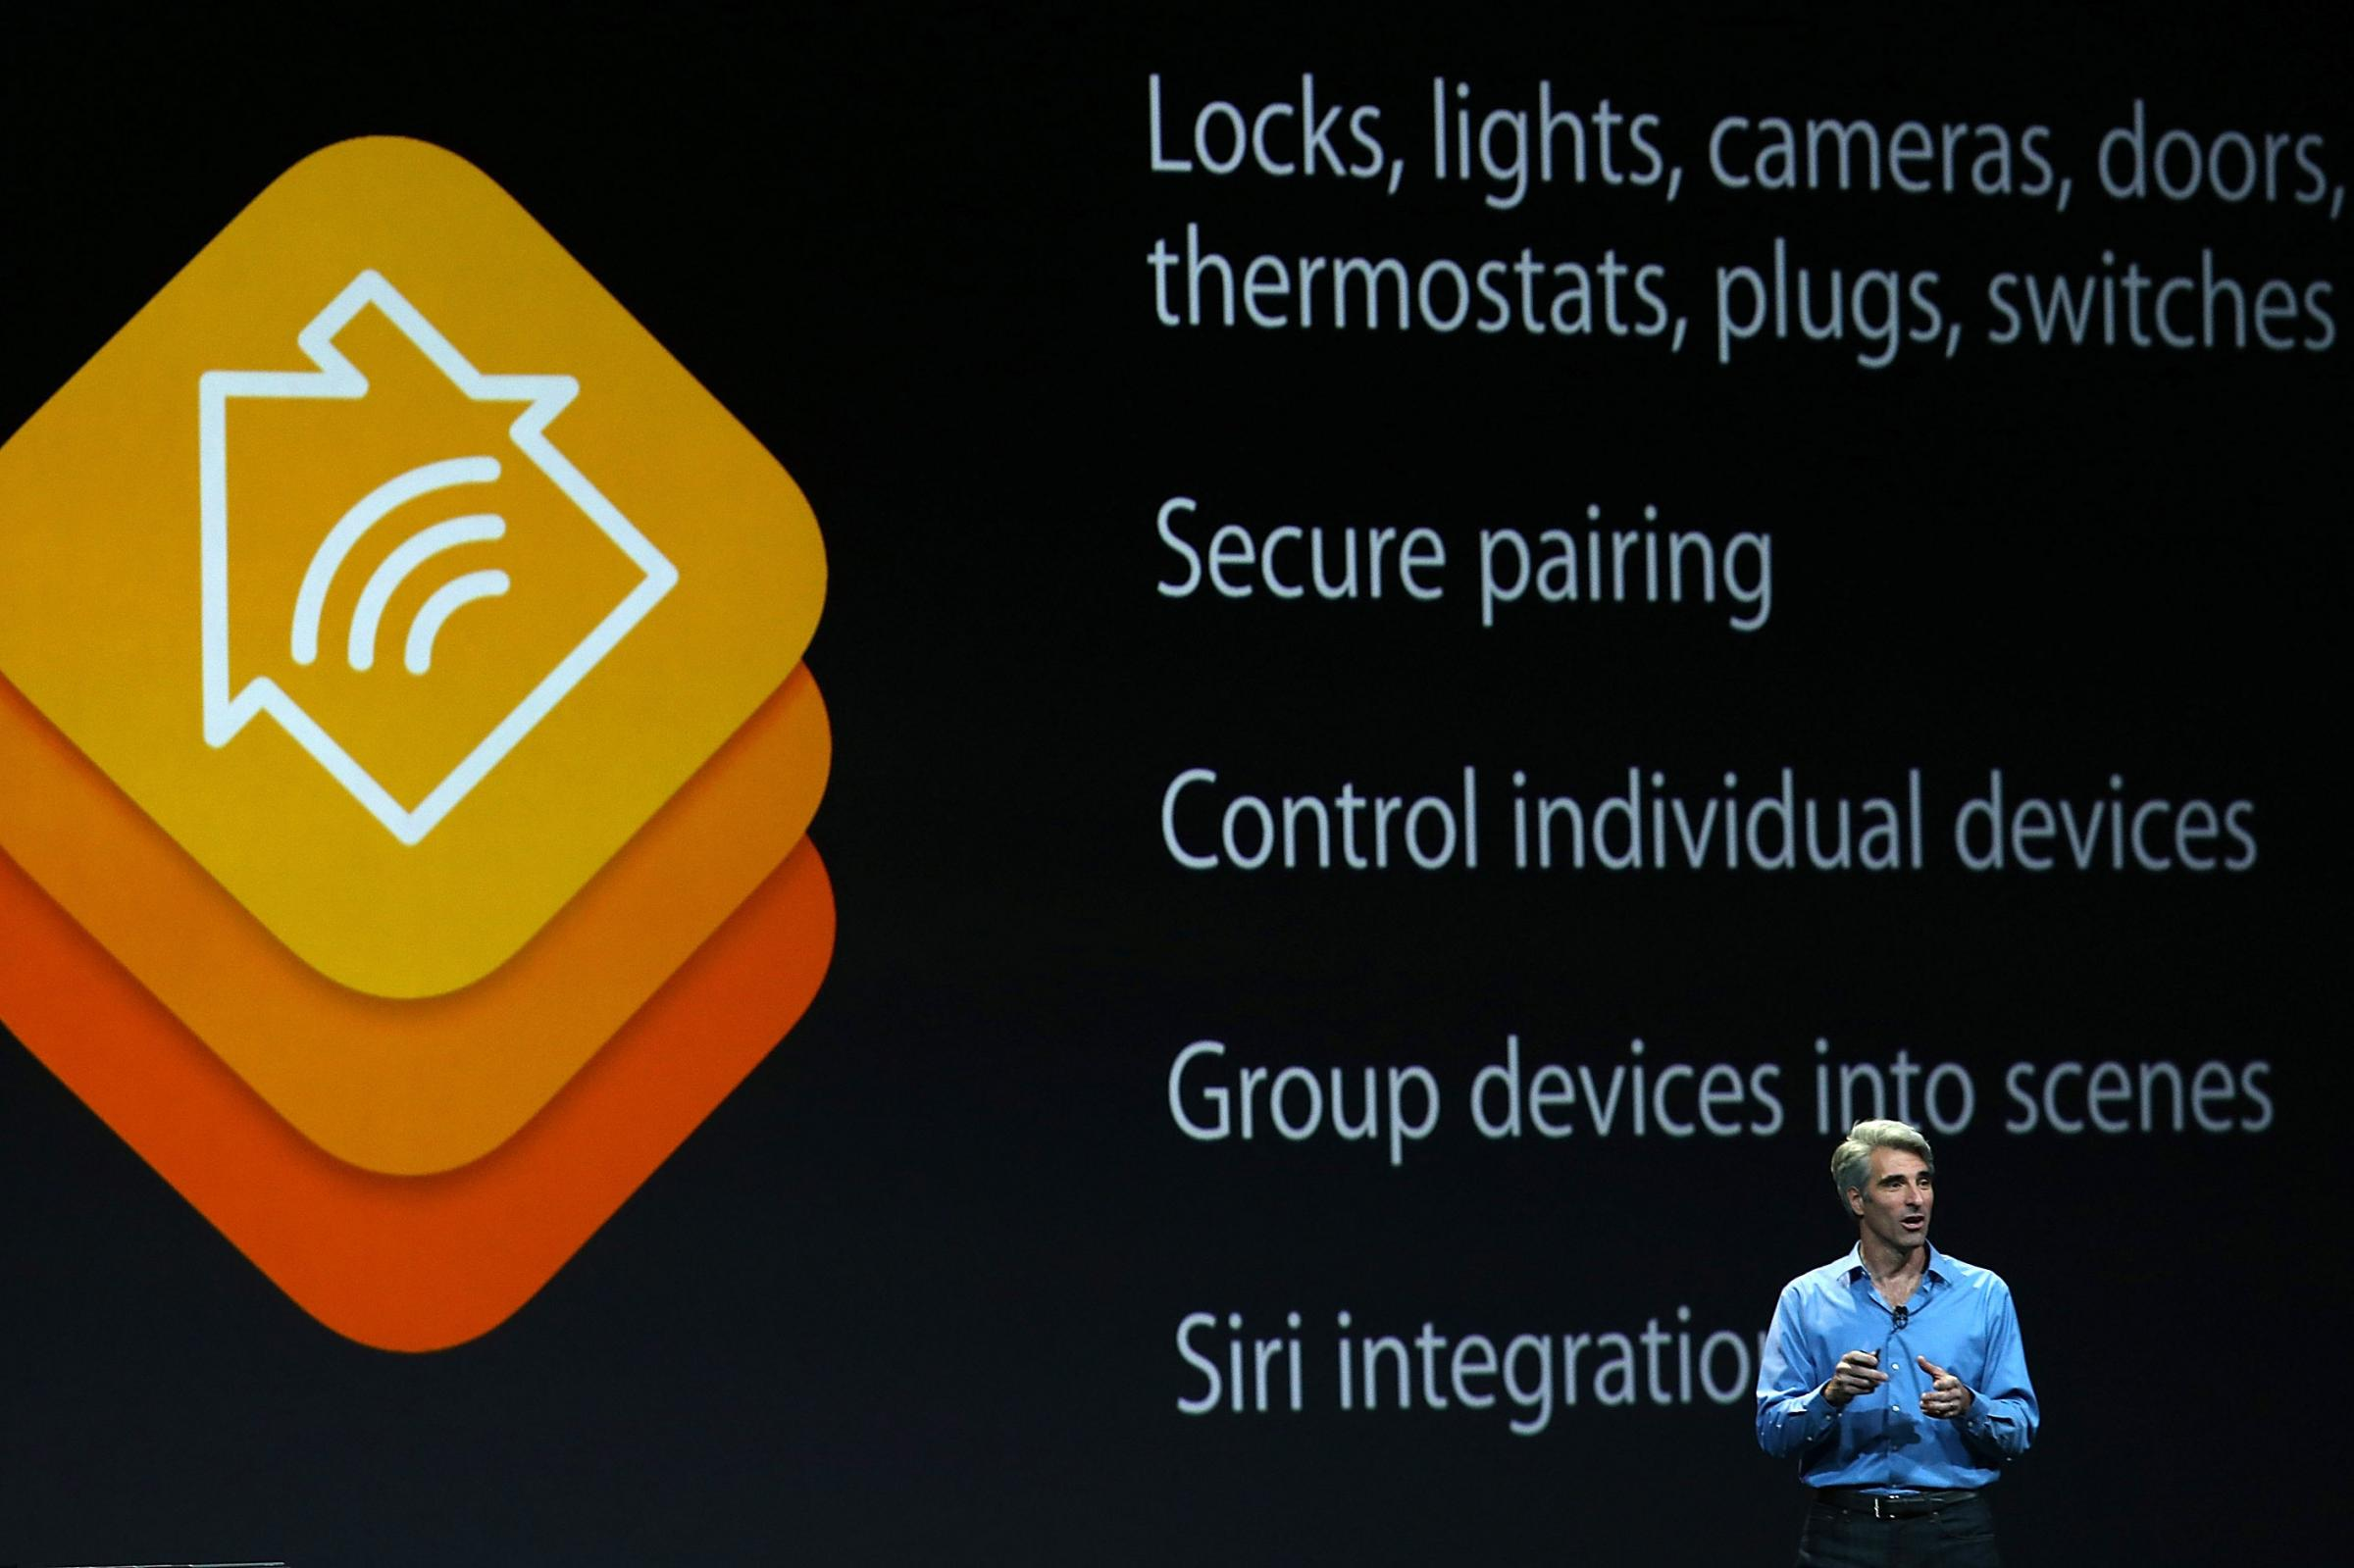 IOS 11.2 Bug: Apple Issues Fix For HomeKit Zero-Day Flaw